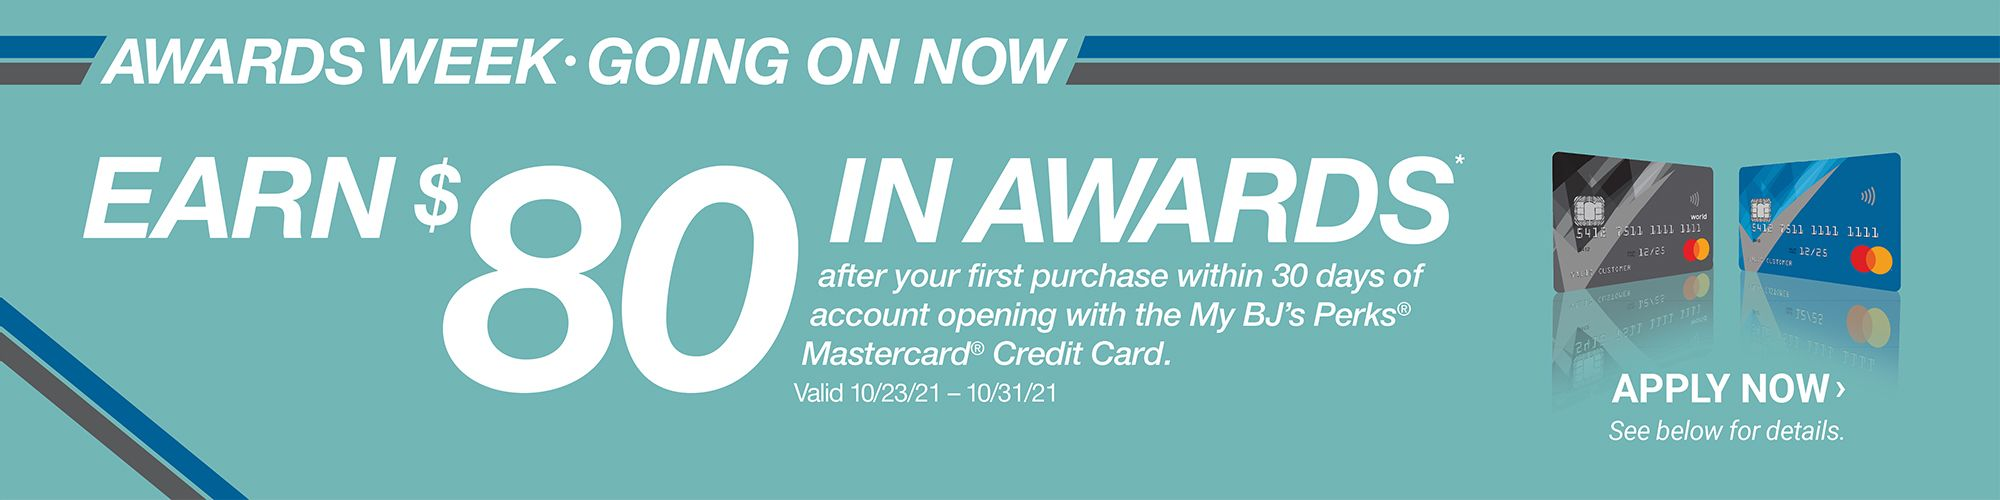 Awards week, going on now. Earn 80 dollars in rewards after eyour first purchase within 30 days of account opening with the My BJ's Perks Mastercard Credit Card. Valid from 10/23-10/31. Click here to apply now. See below for details.